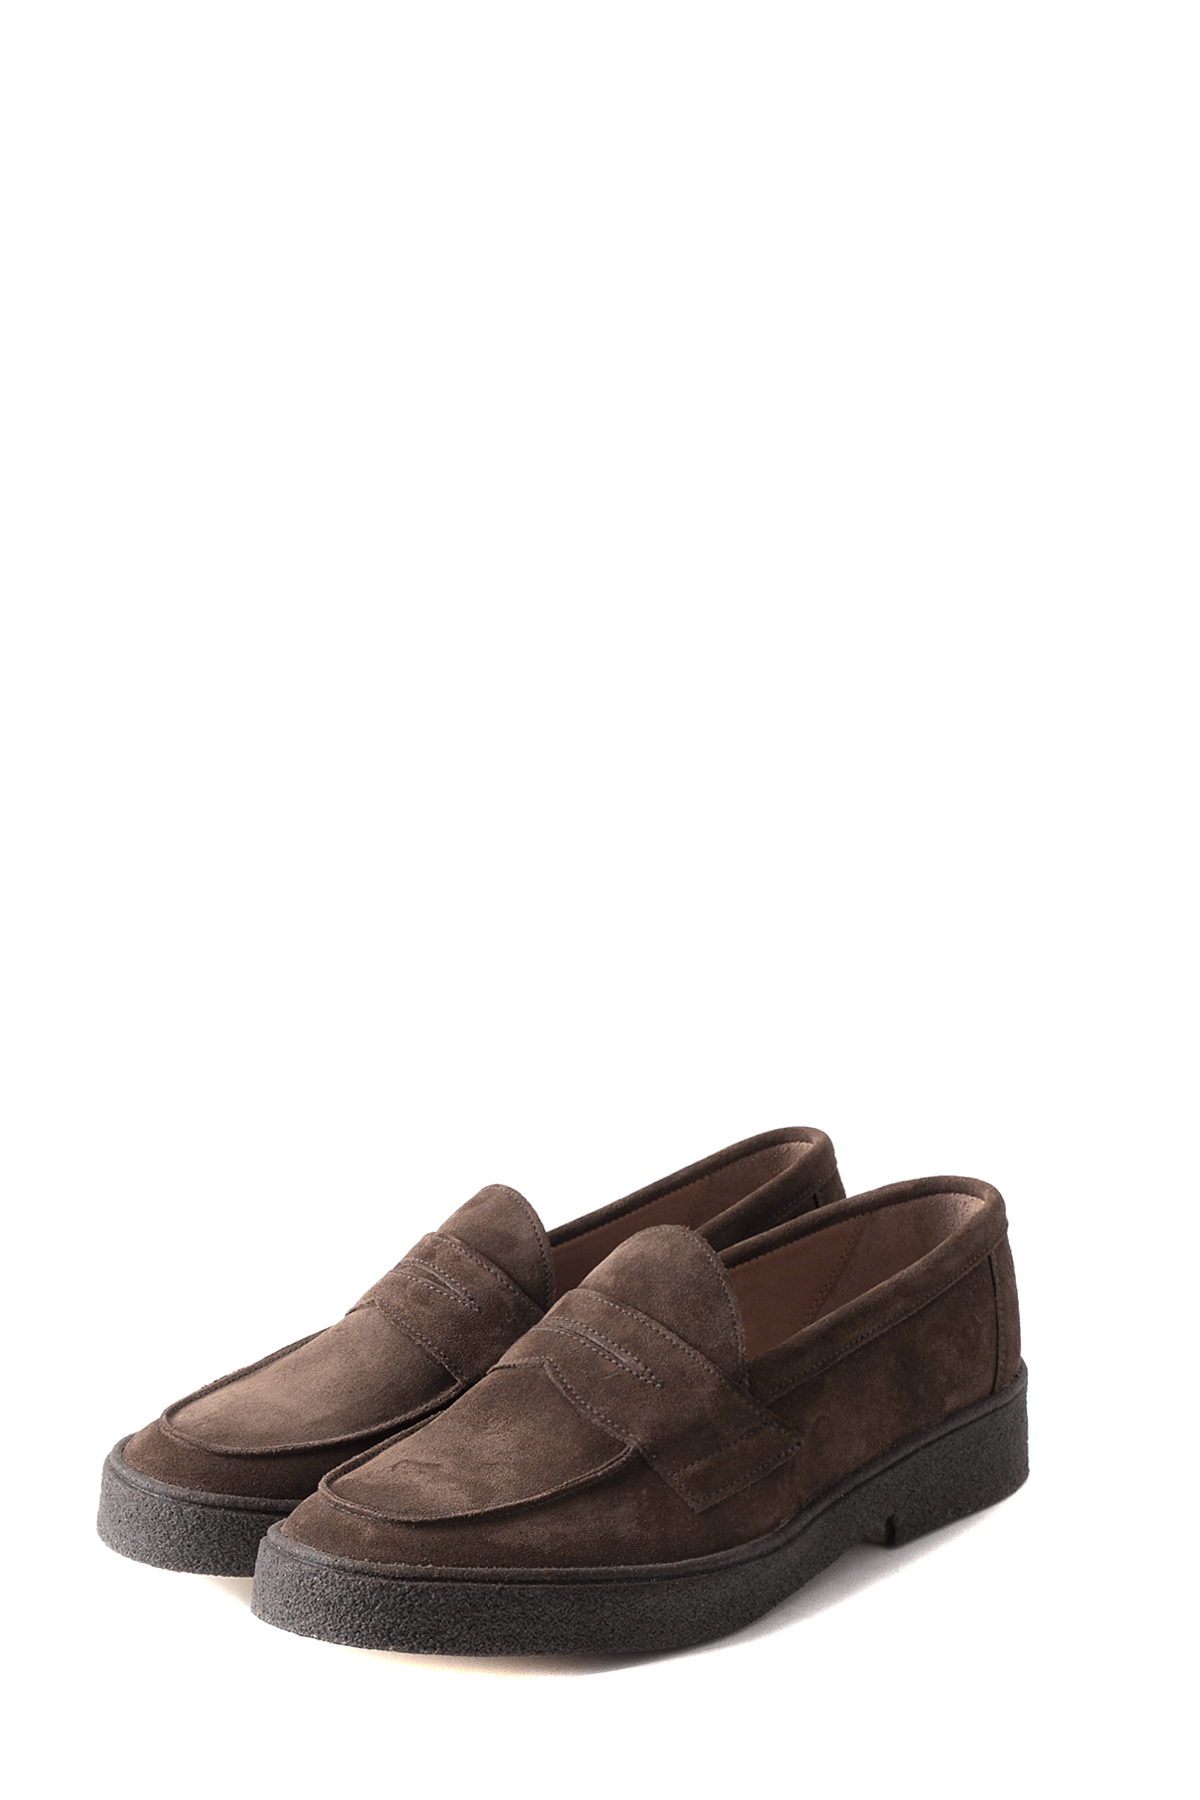 GEORGE COX : Penny Loafer (Snuff Suede)